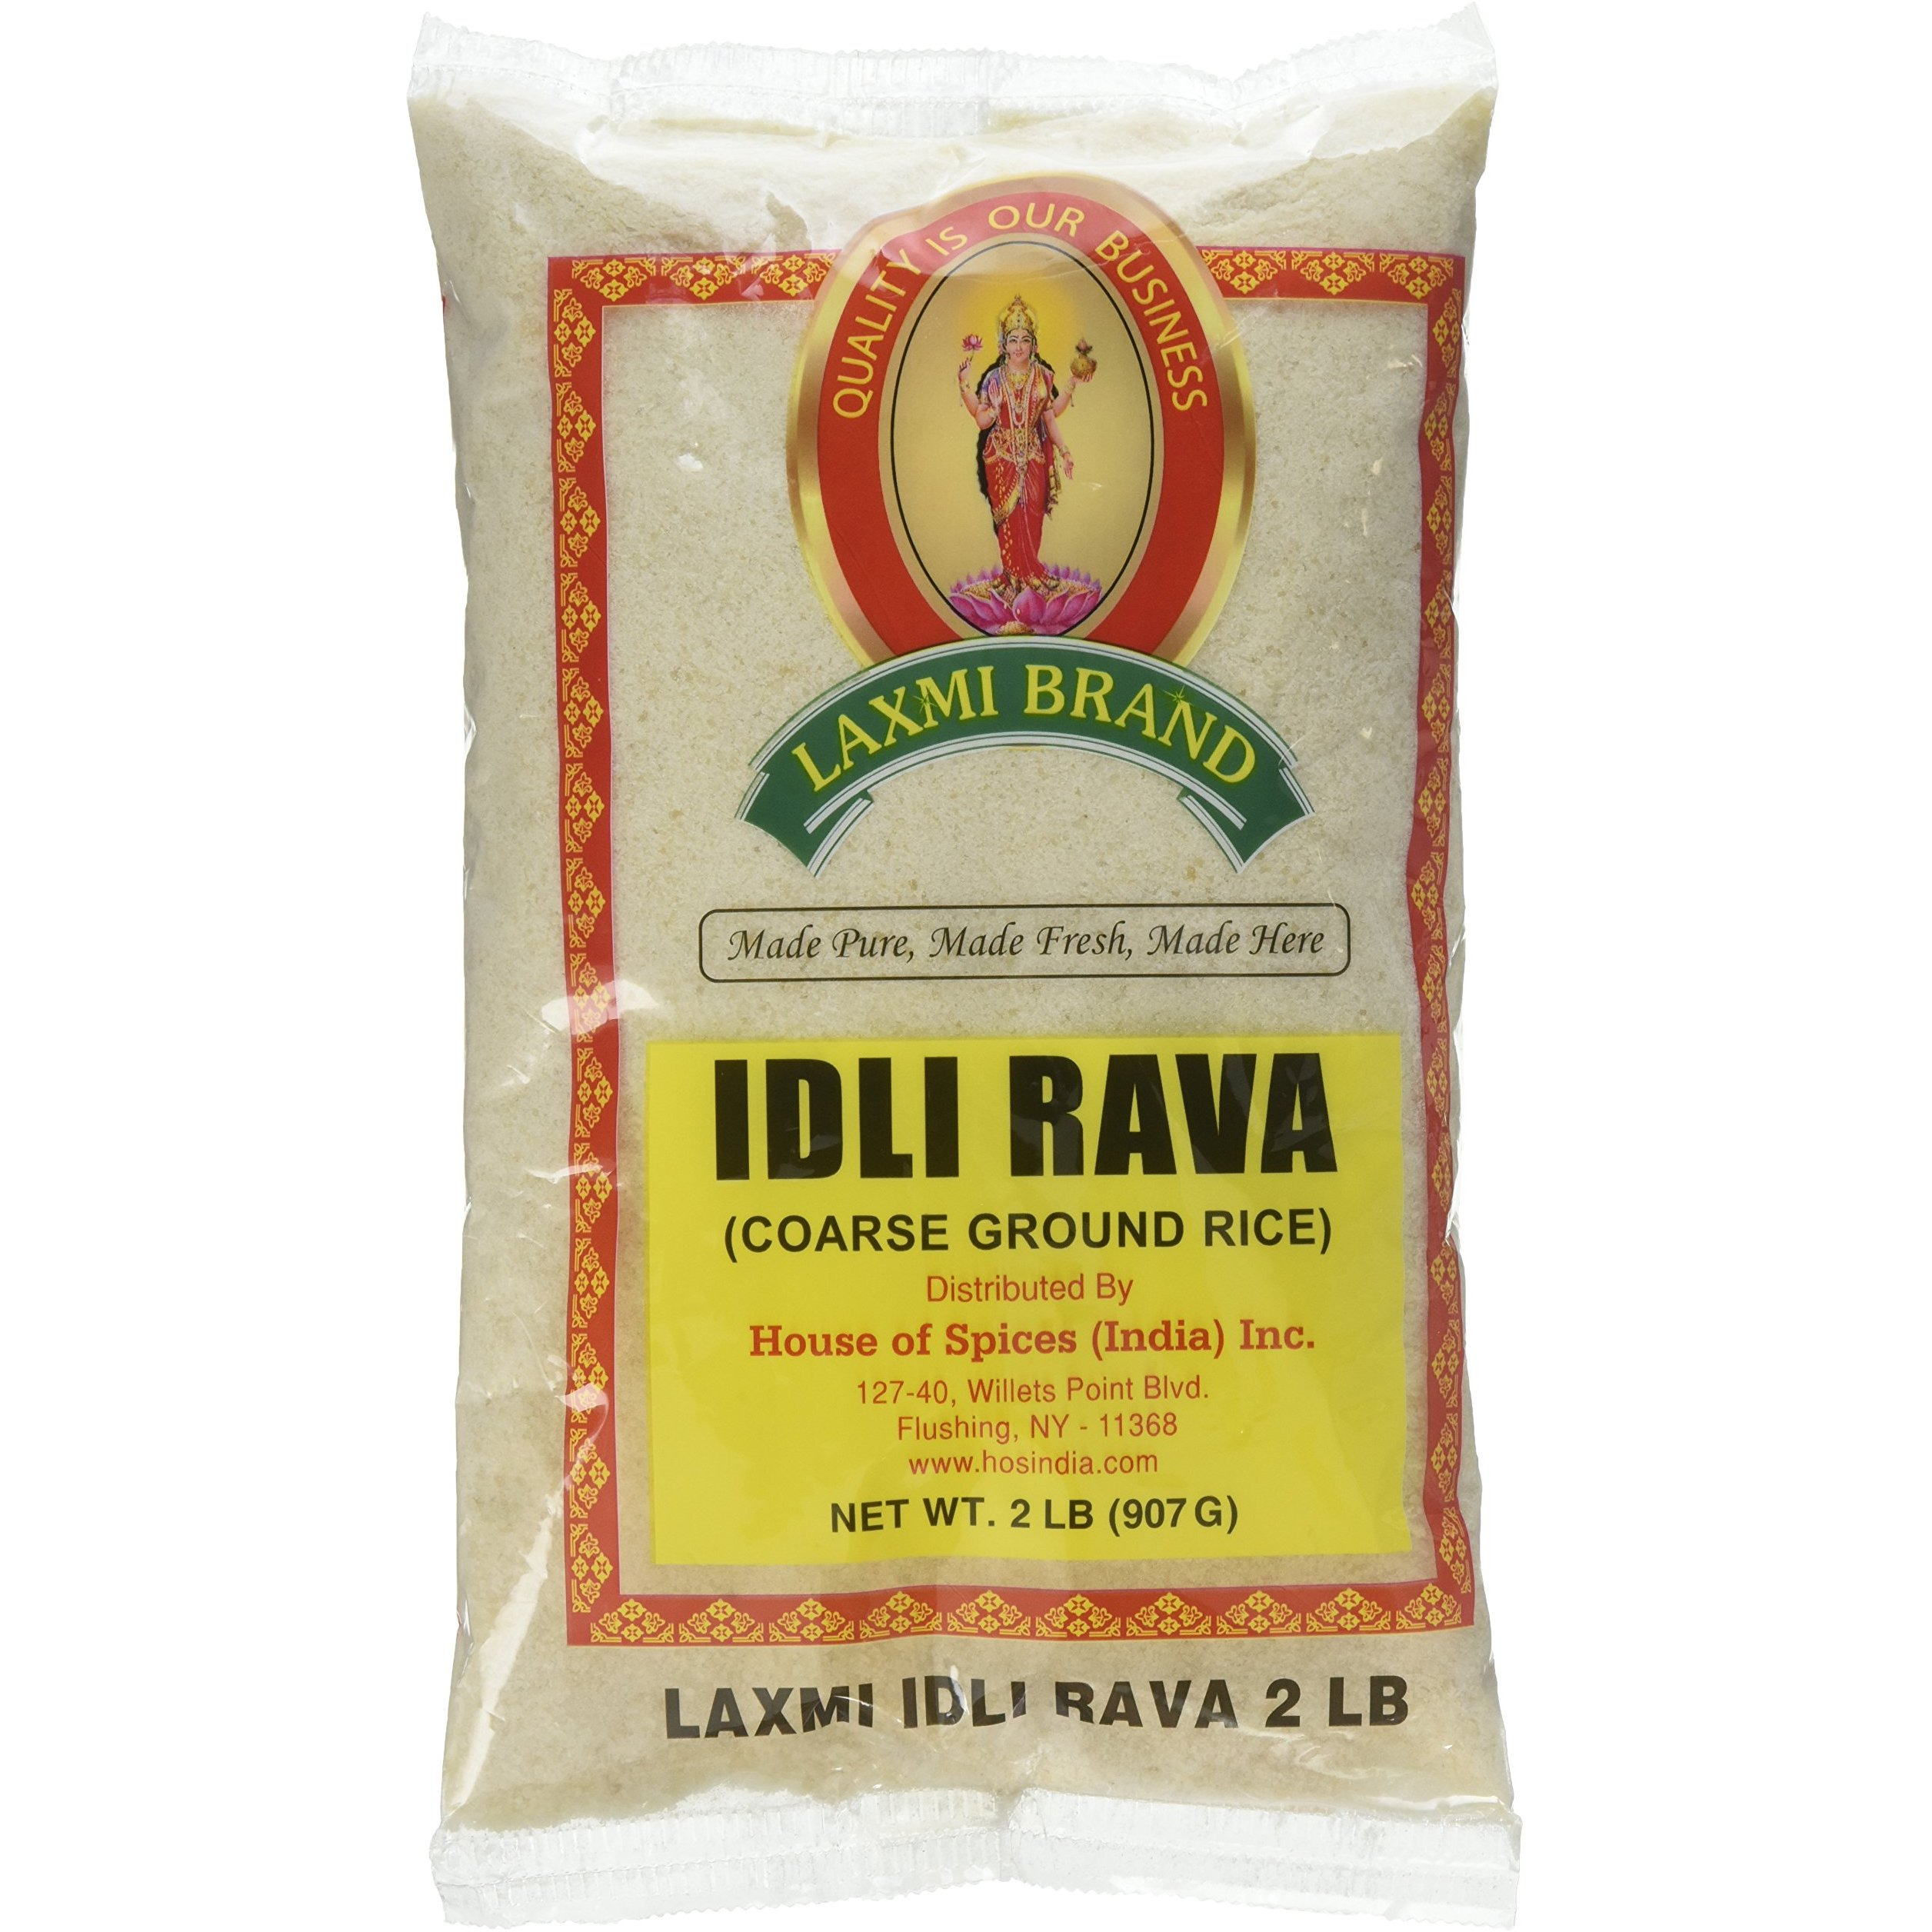 Laxmi Idli Rawa ( Coarse Ground Rice) 2 lbs